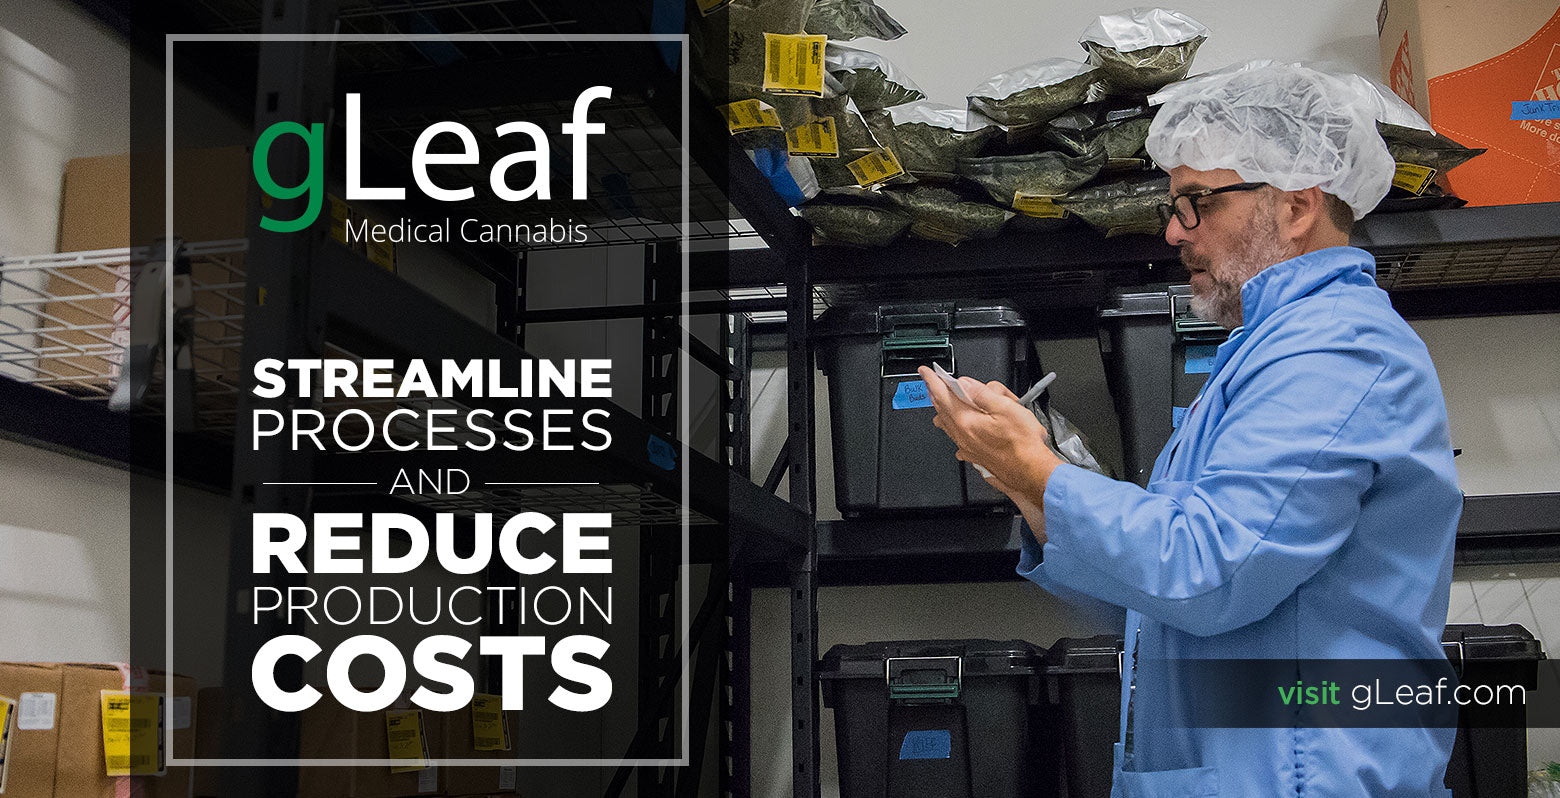 gLeaf Medical Cannabis Streamline Processes and Reduce Production Costs